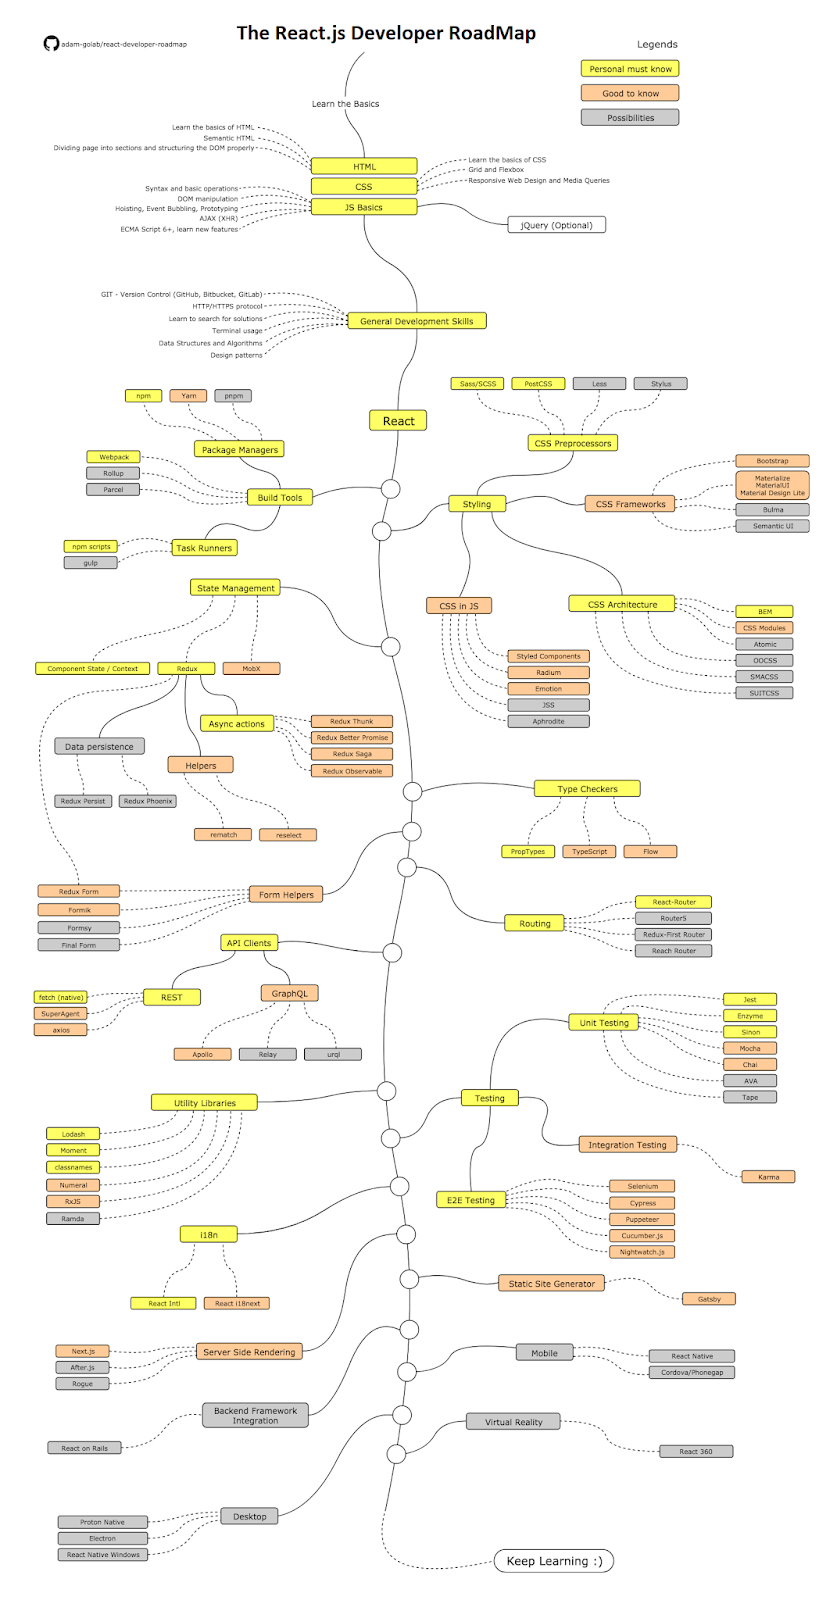 The 2021 React Developer RoadMap - Guide to become a Modern Frontend Web Developer